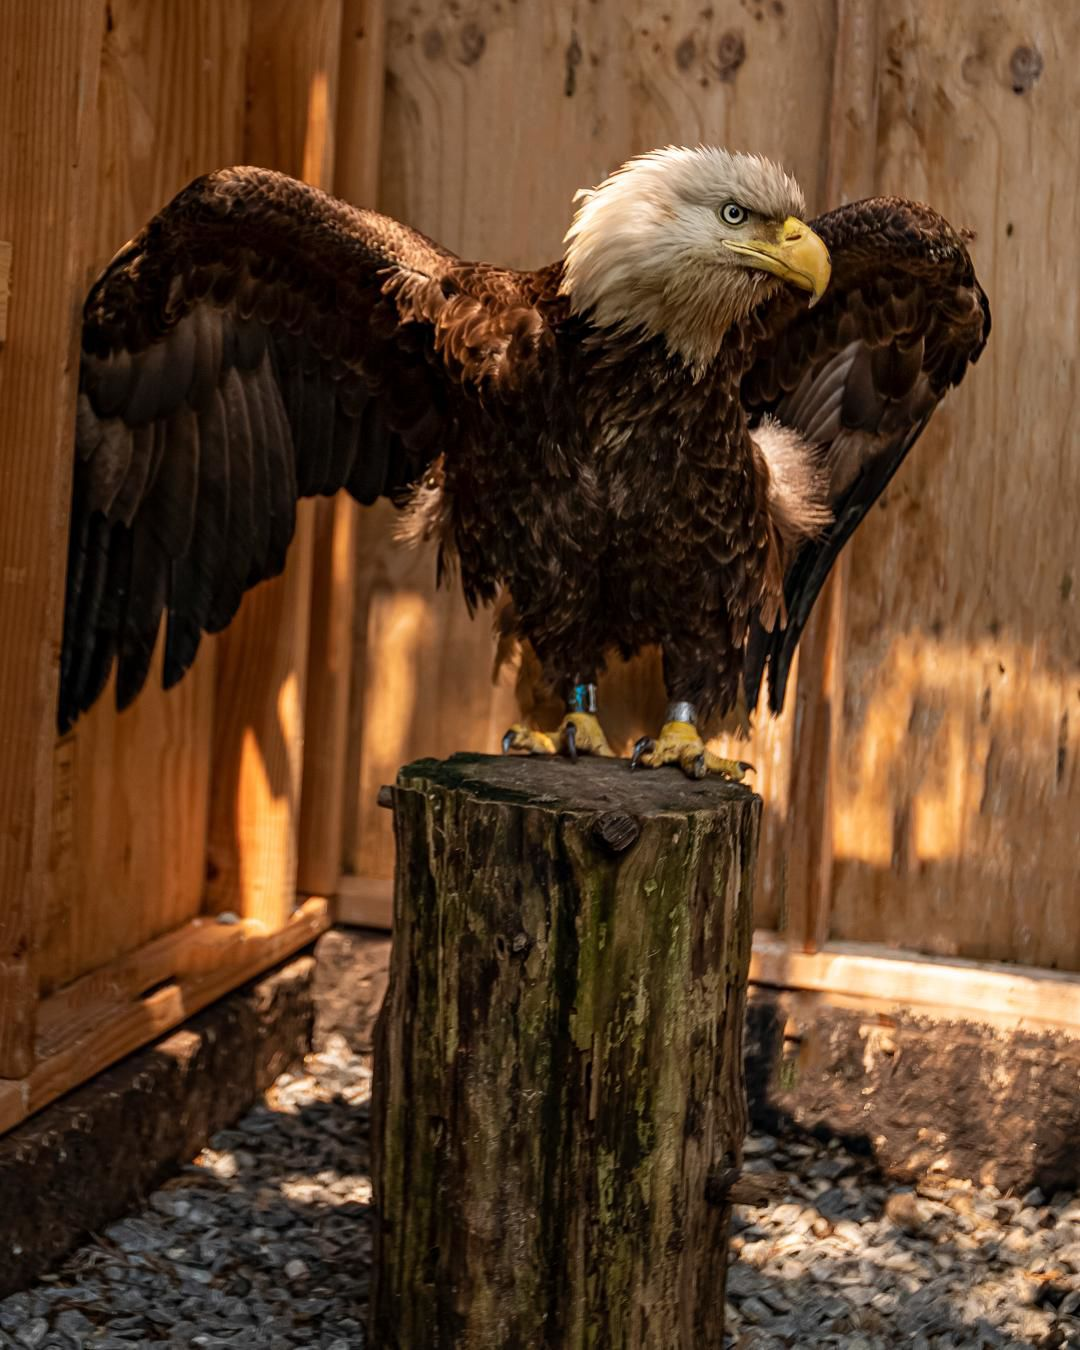 eagle on the mend